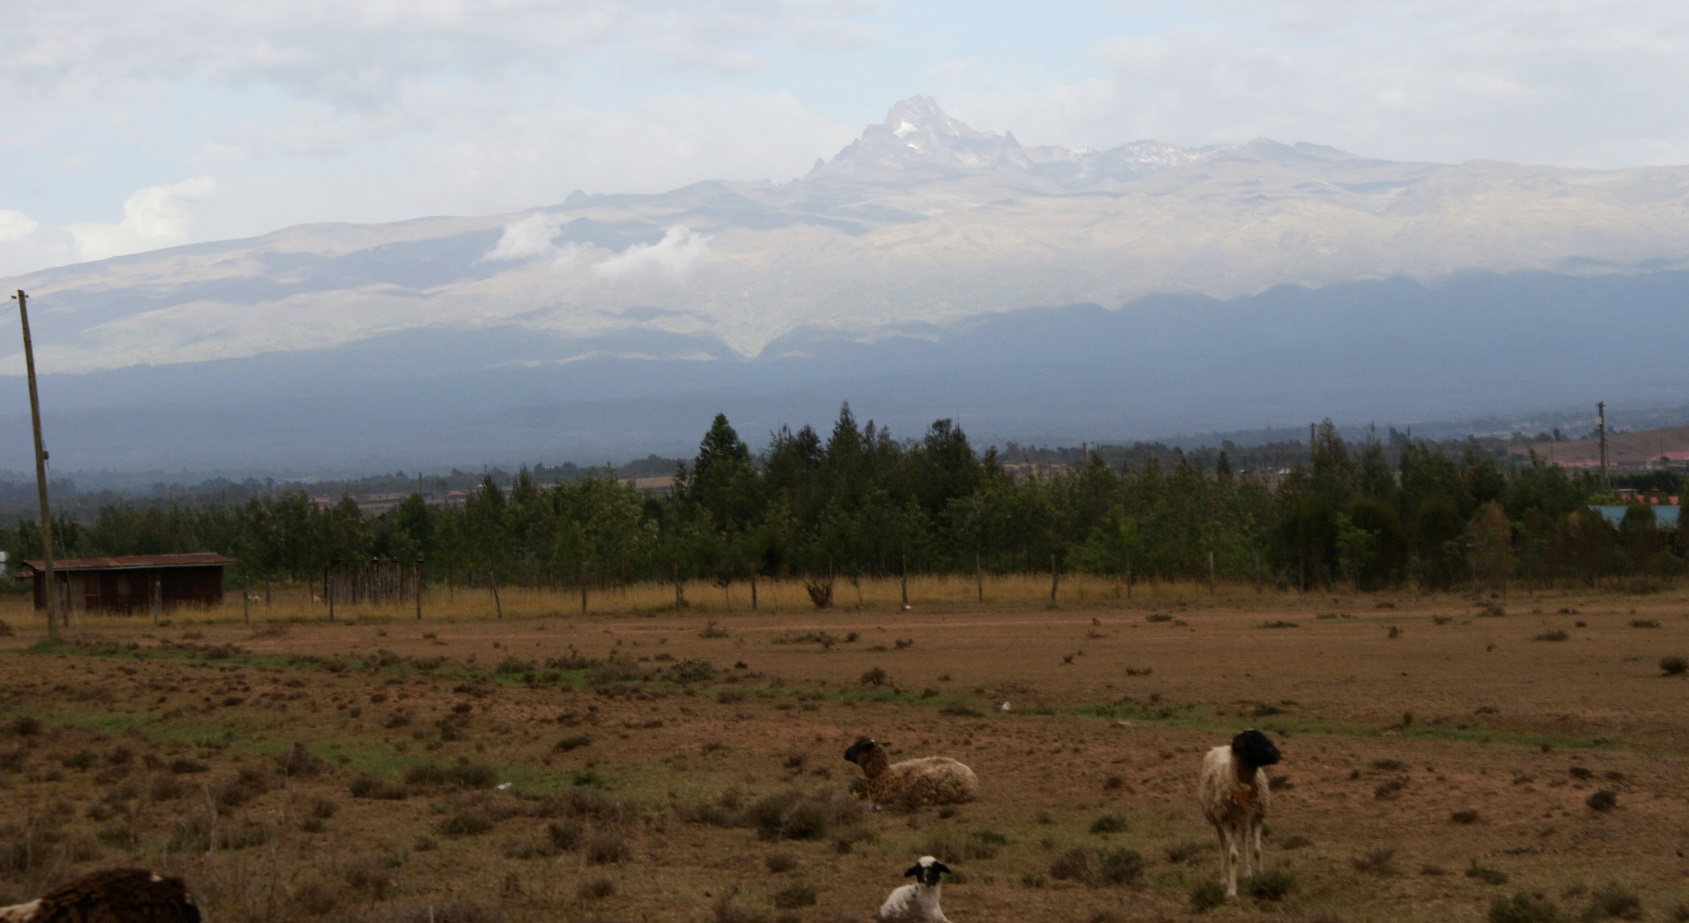 A wide angle view of the leeward side of the Mt. Kenya forest ecosystem. Fire outbreaks on this side of the mountain are common due to prolonged dry spells.